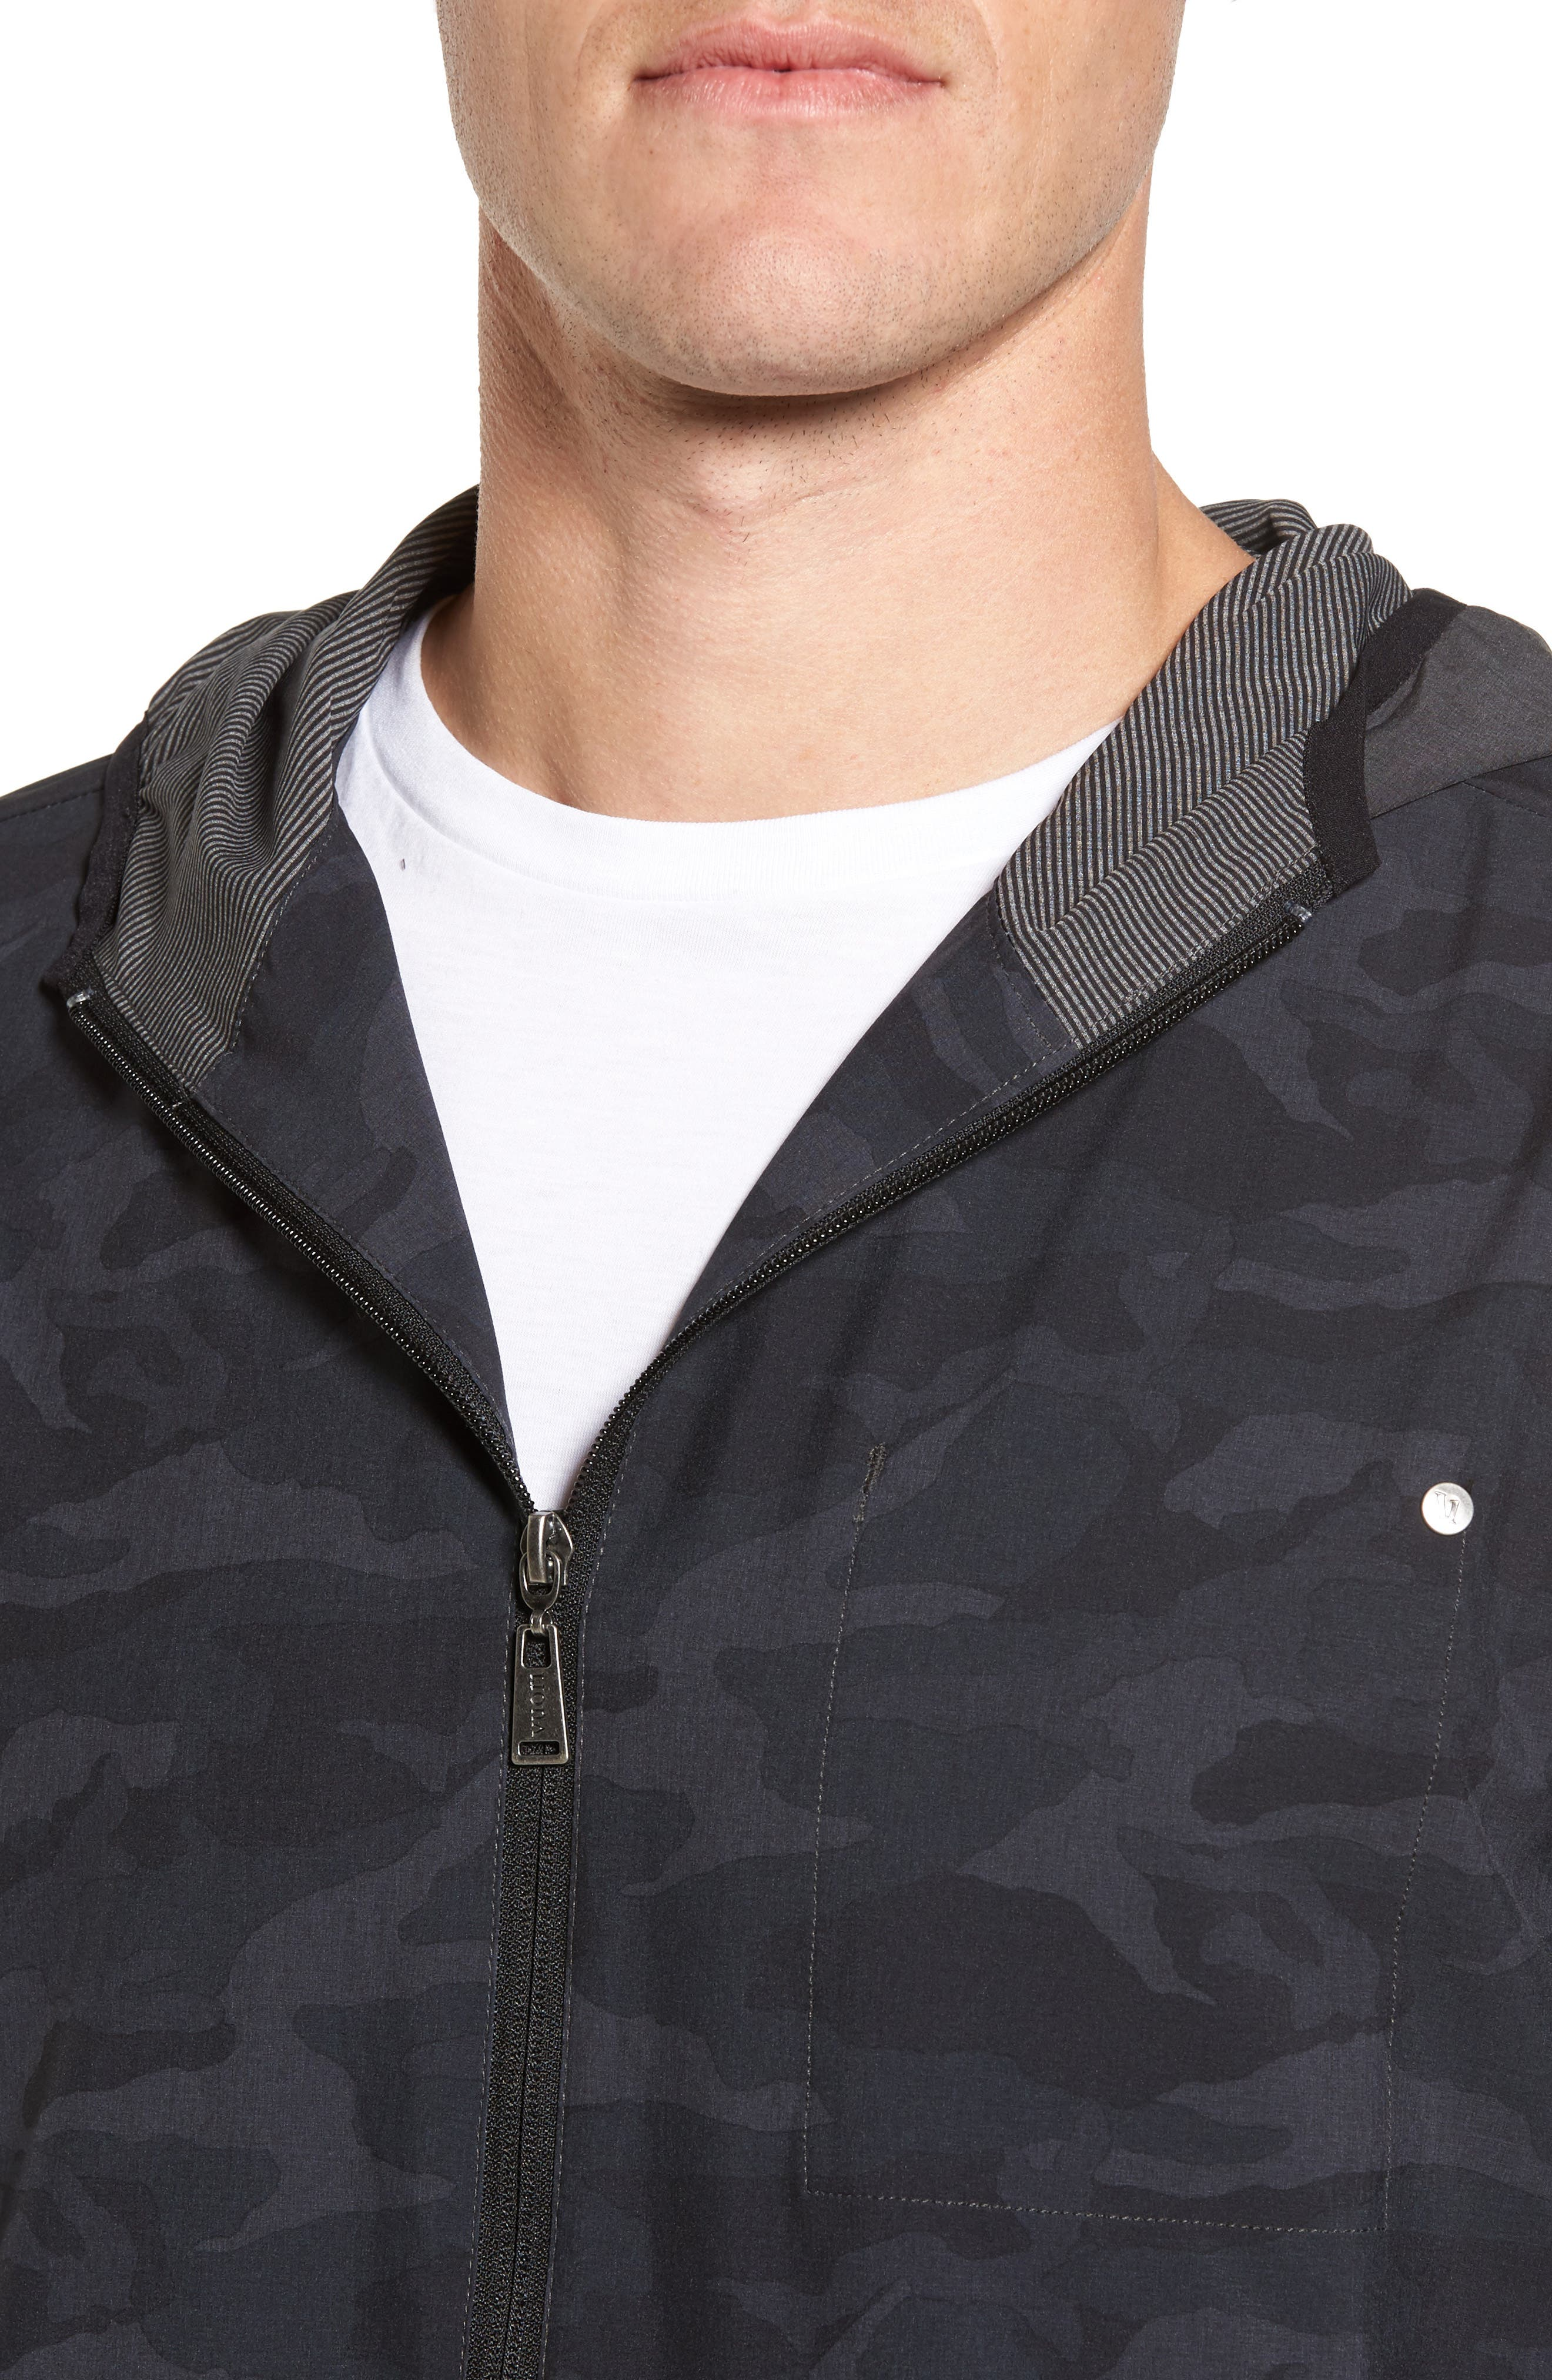 Outdoor Training Shell Jacket,                             Alternate thumbnail 4, color,                             Black Camo